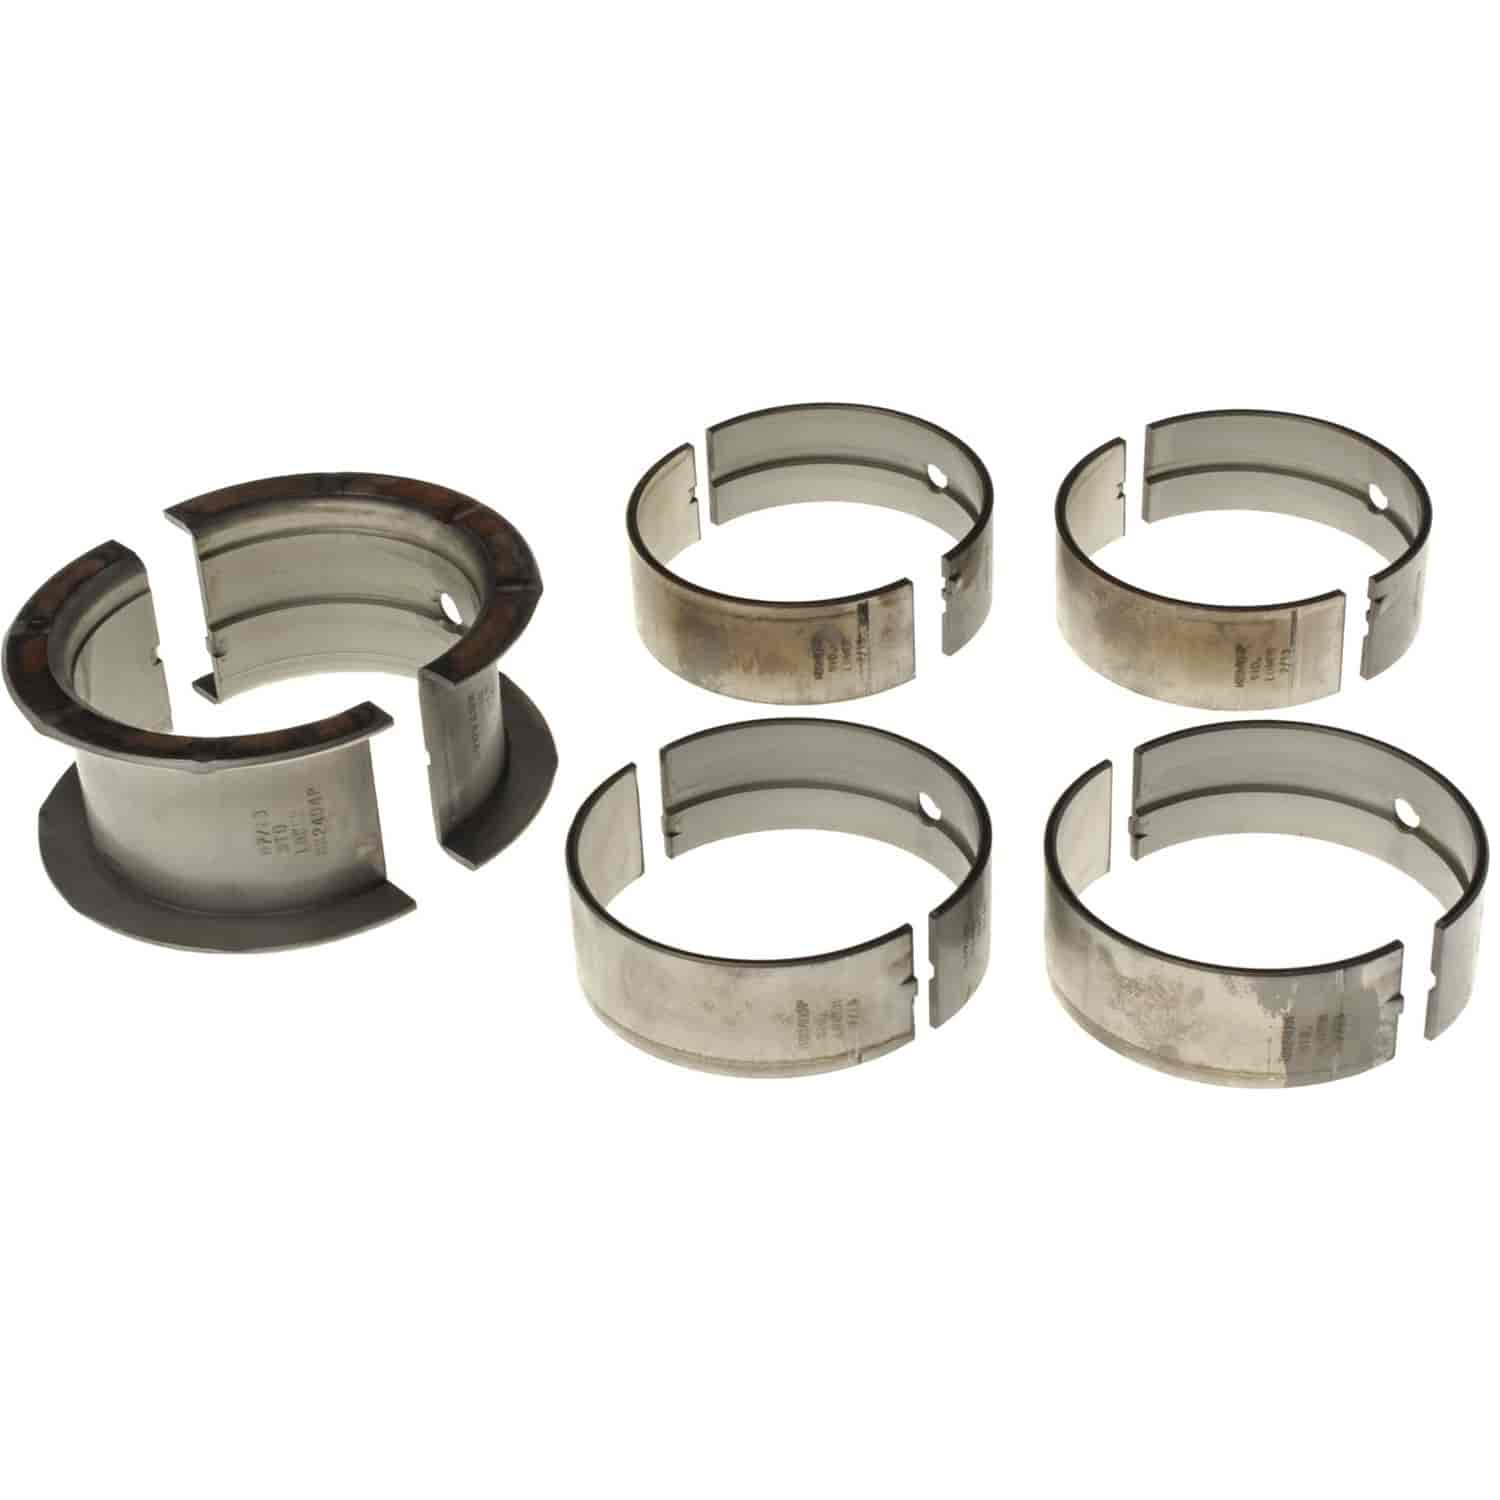 Clevite MS829P40 - Clevite 77 GM High-Performance Bearings